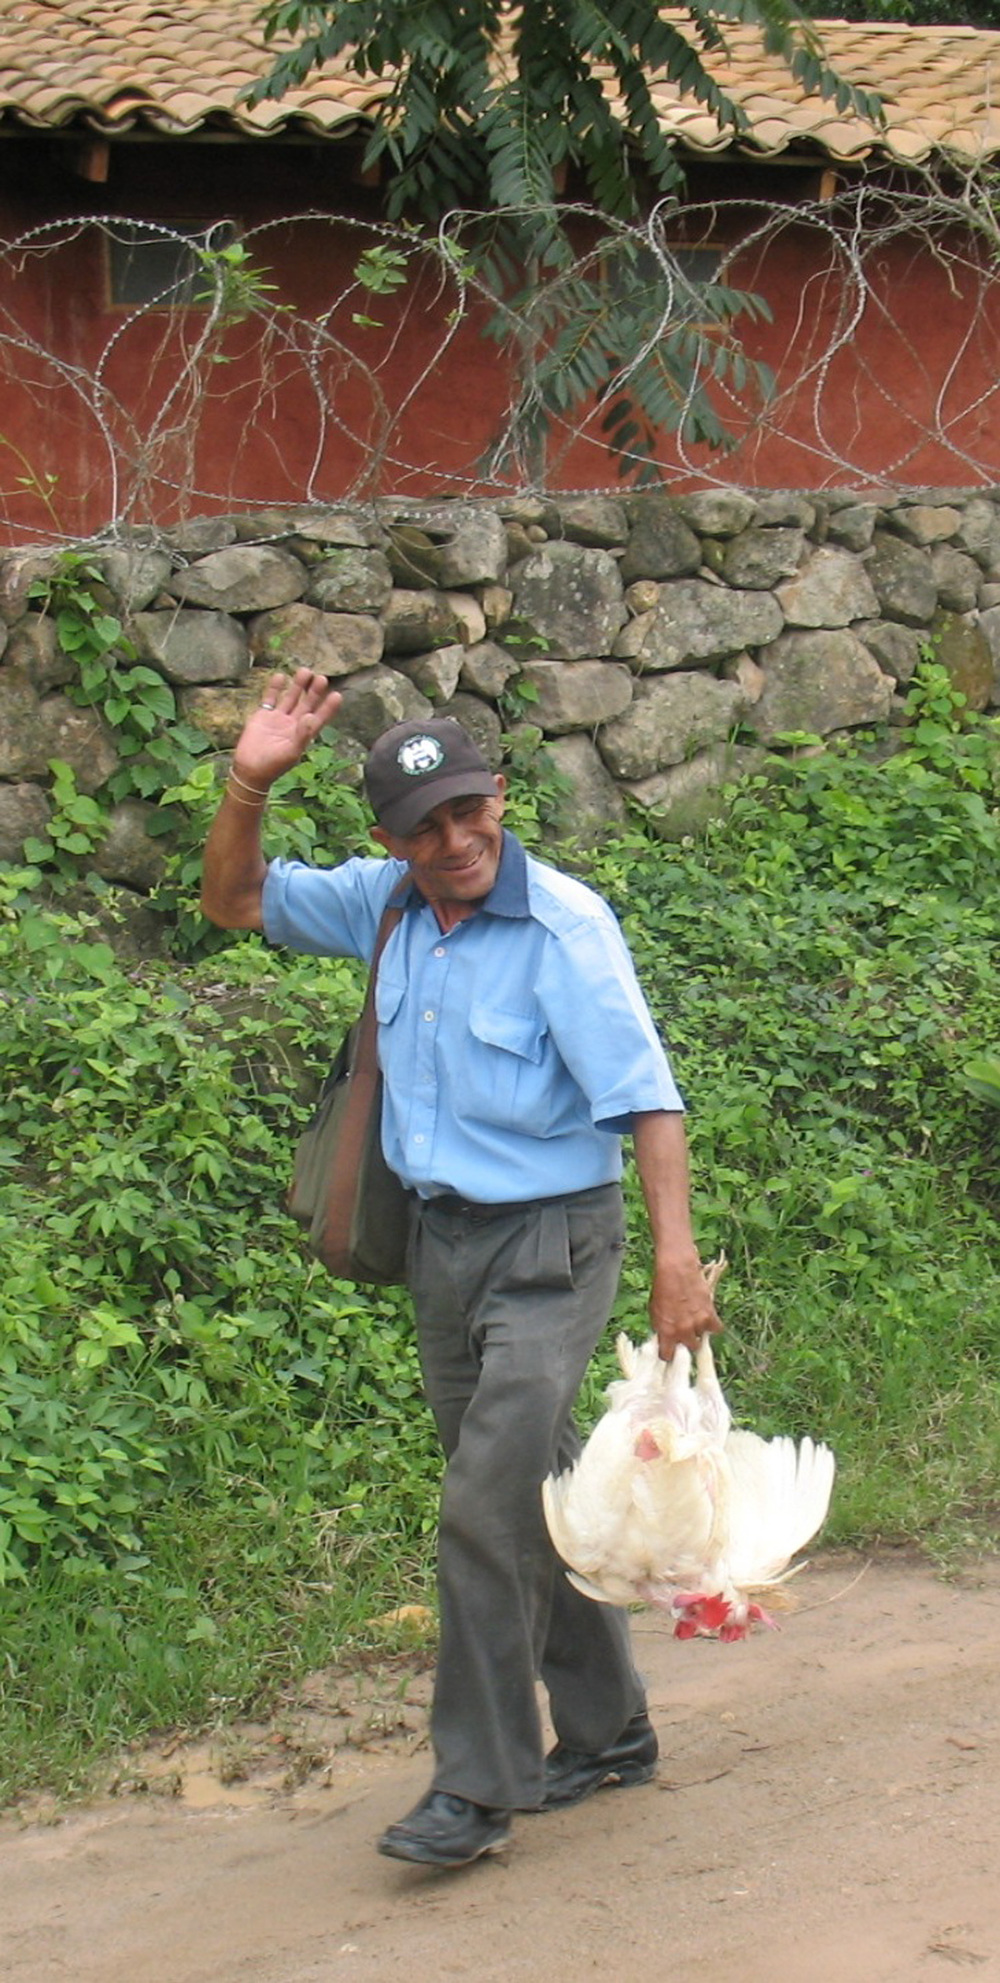 web.man with chickens.jpg